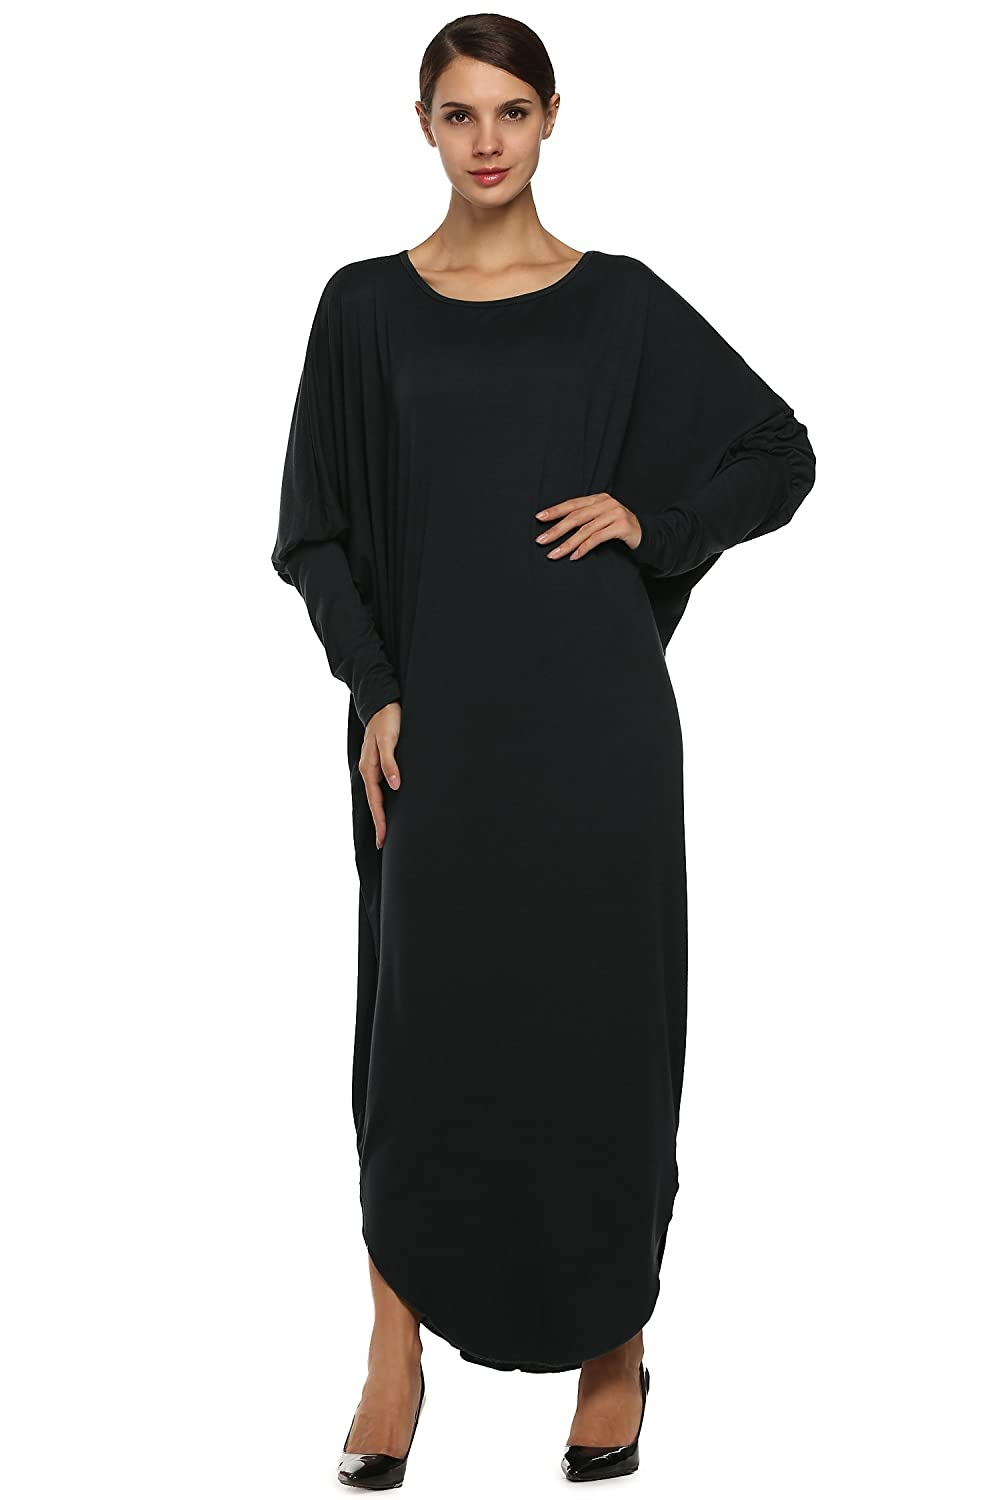 Angvns Women's Long Sleeve Casual Loose Batwing Jersey Maxi Long Party Dress